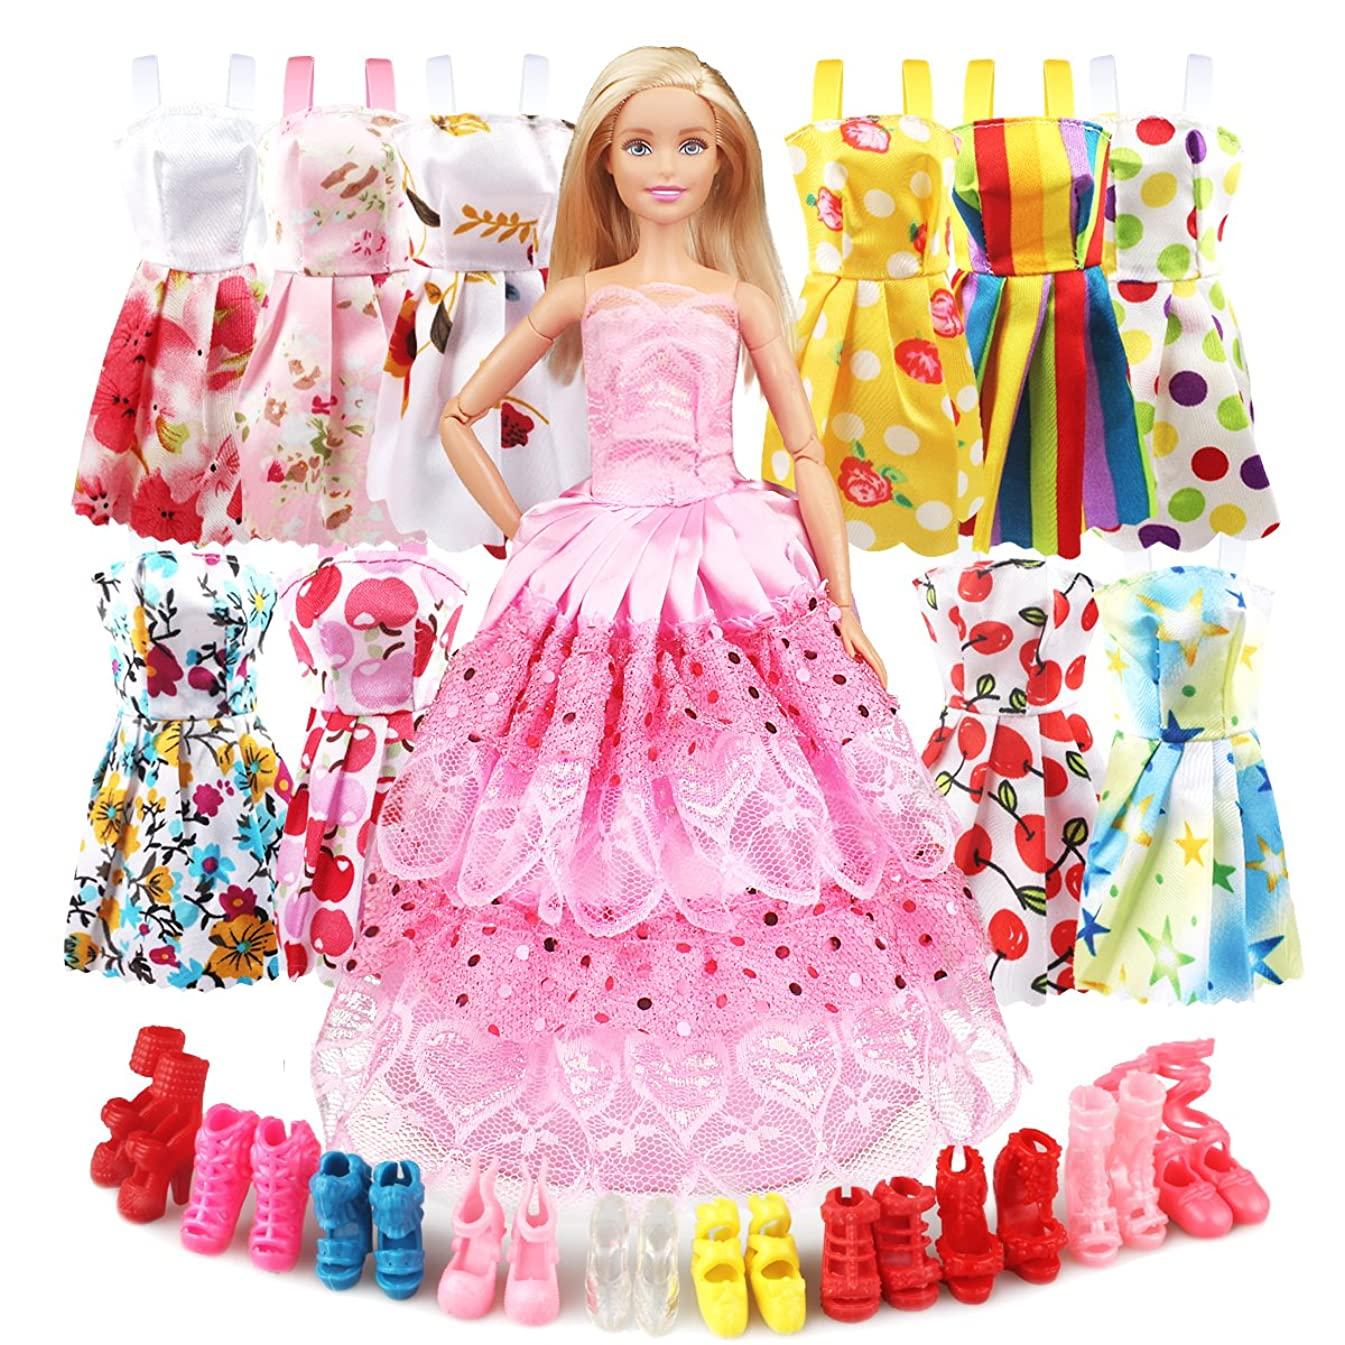 Eligara Doll Clothes and Accessories, Baby Doll Clothes Dresses Shoes Sets Include 10 Pack Doll Party Outfits 1 Sewing Dress & 10 Pairs Doll Shoes for Girl's Birthday